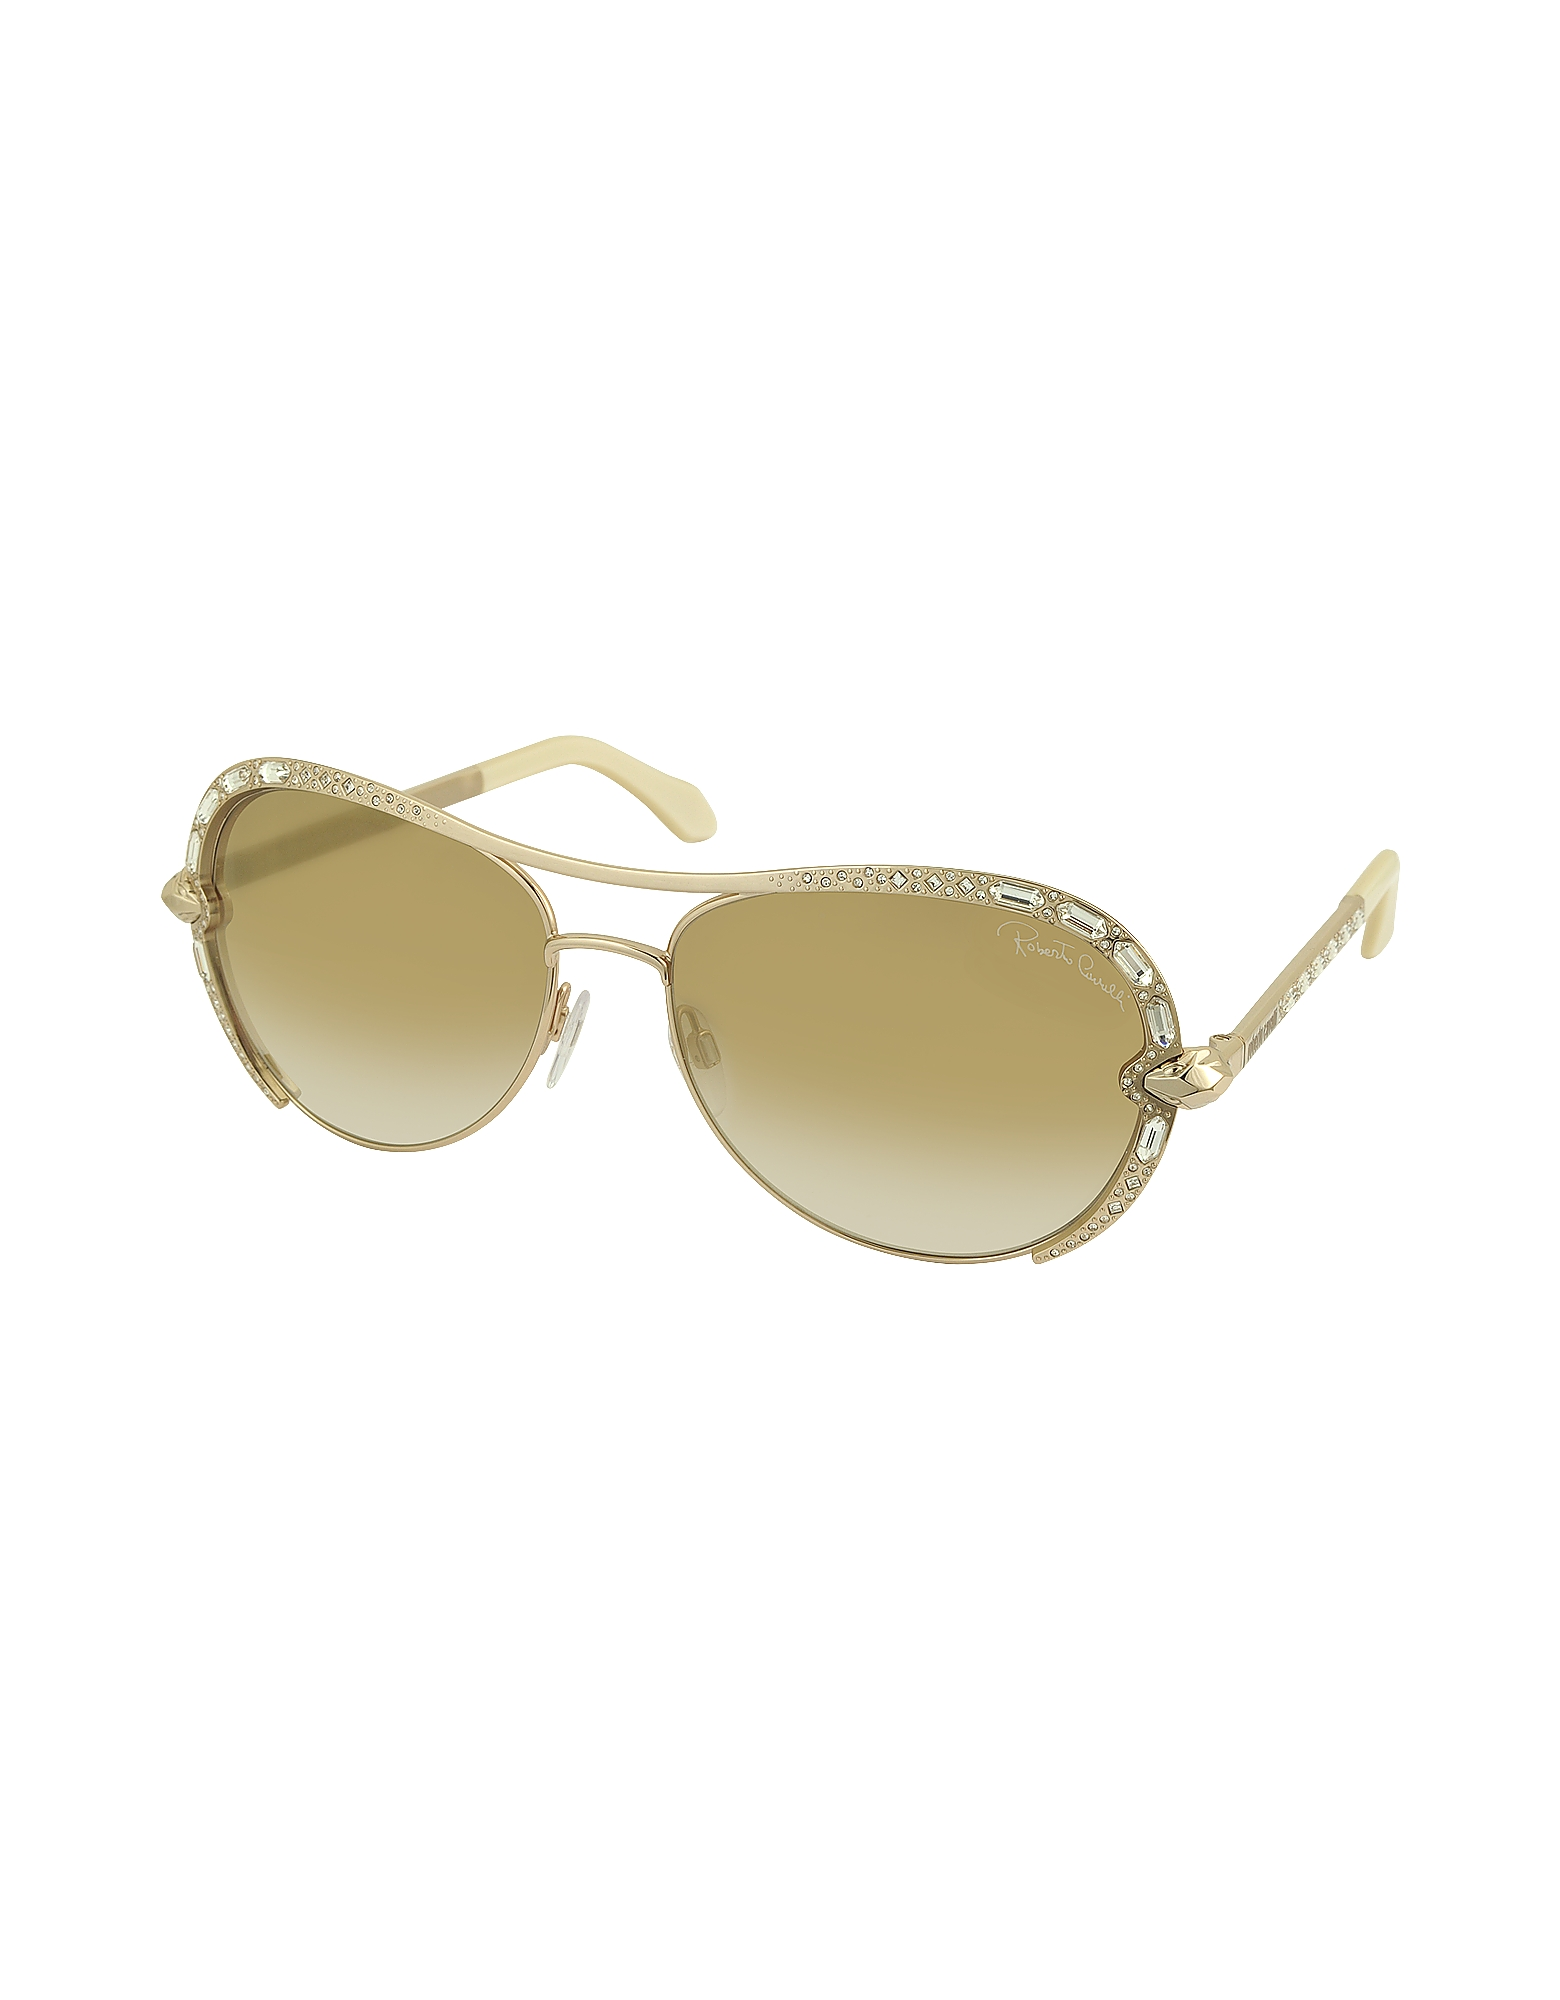 SULAPHAT 975S Gold Metal Aviator Women's Sunglases w/Crystals от Forzieri INT